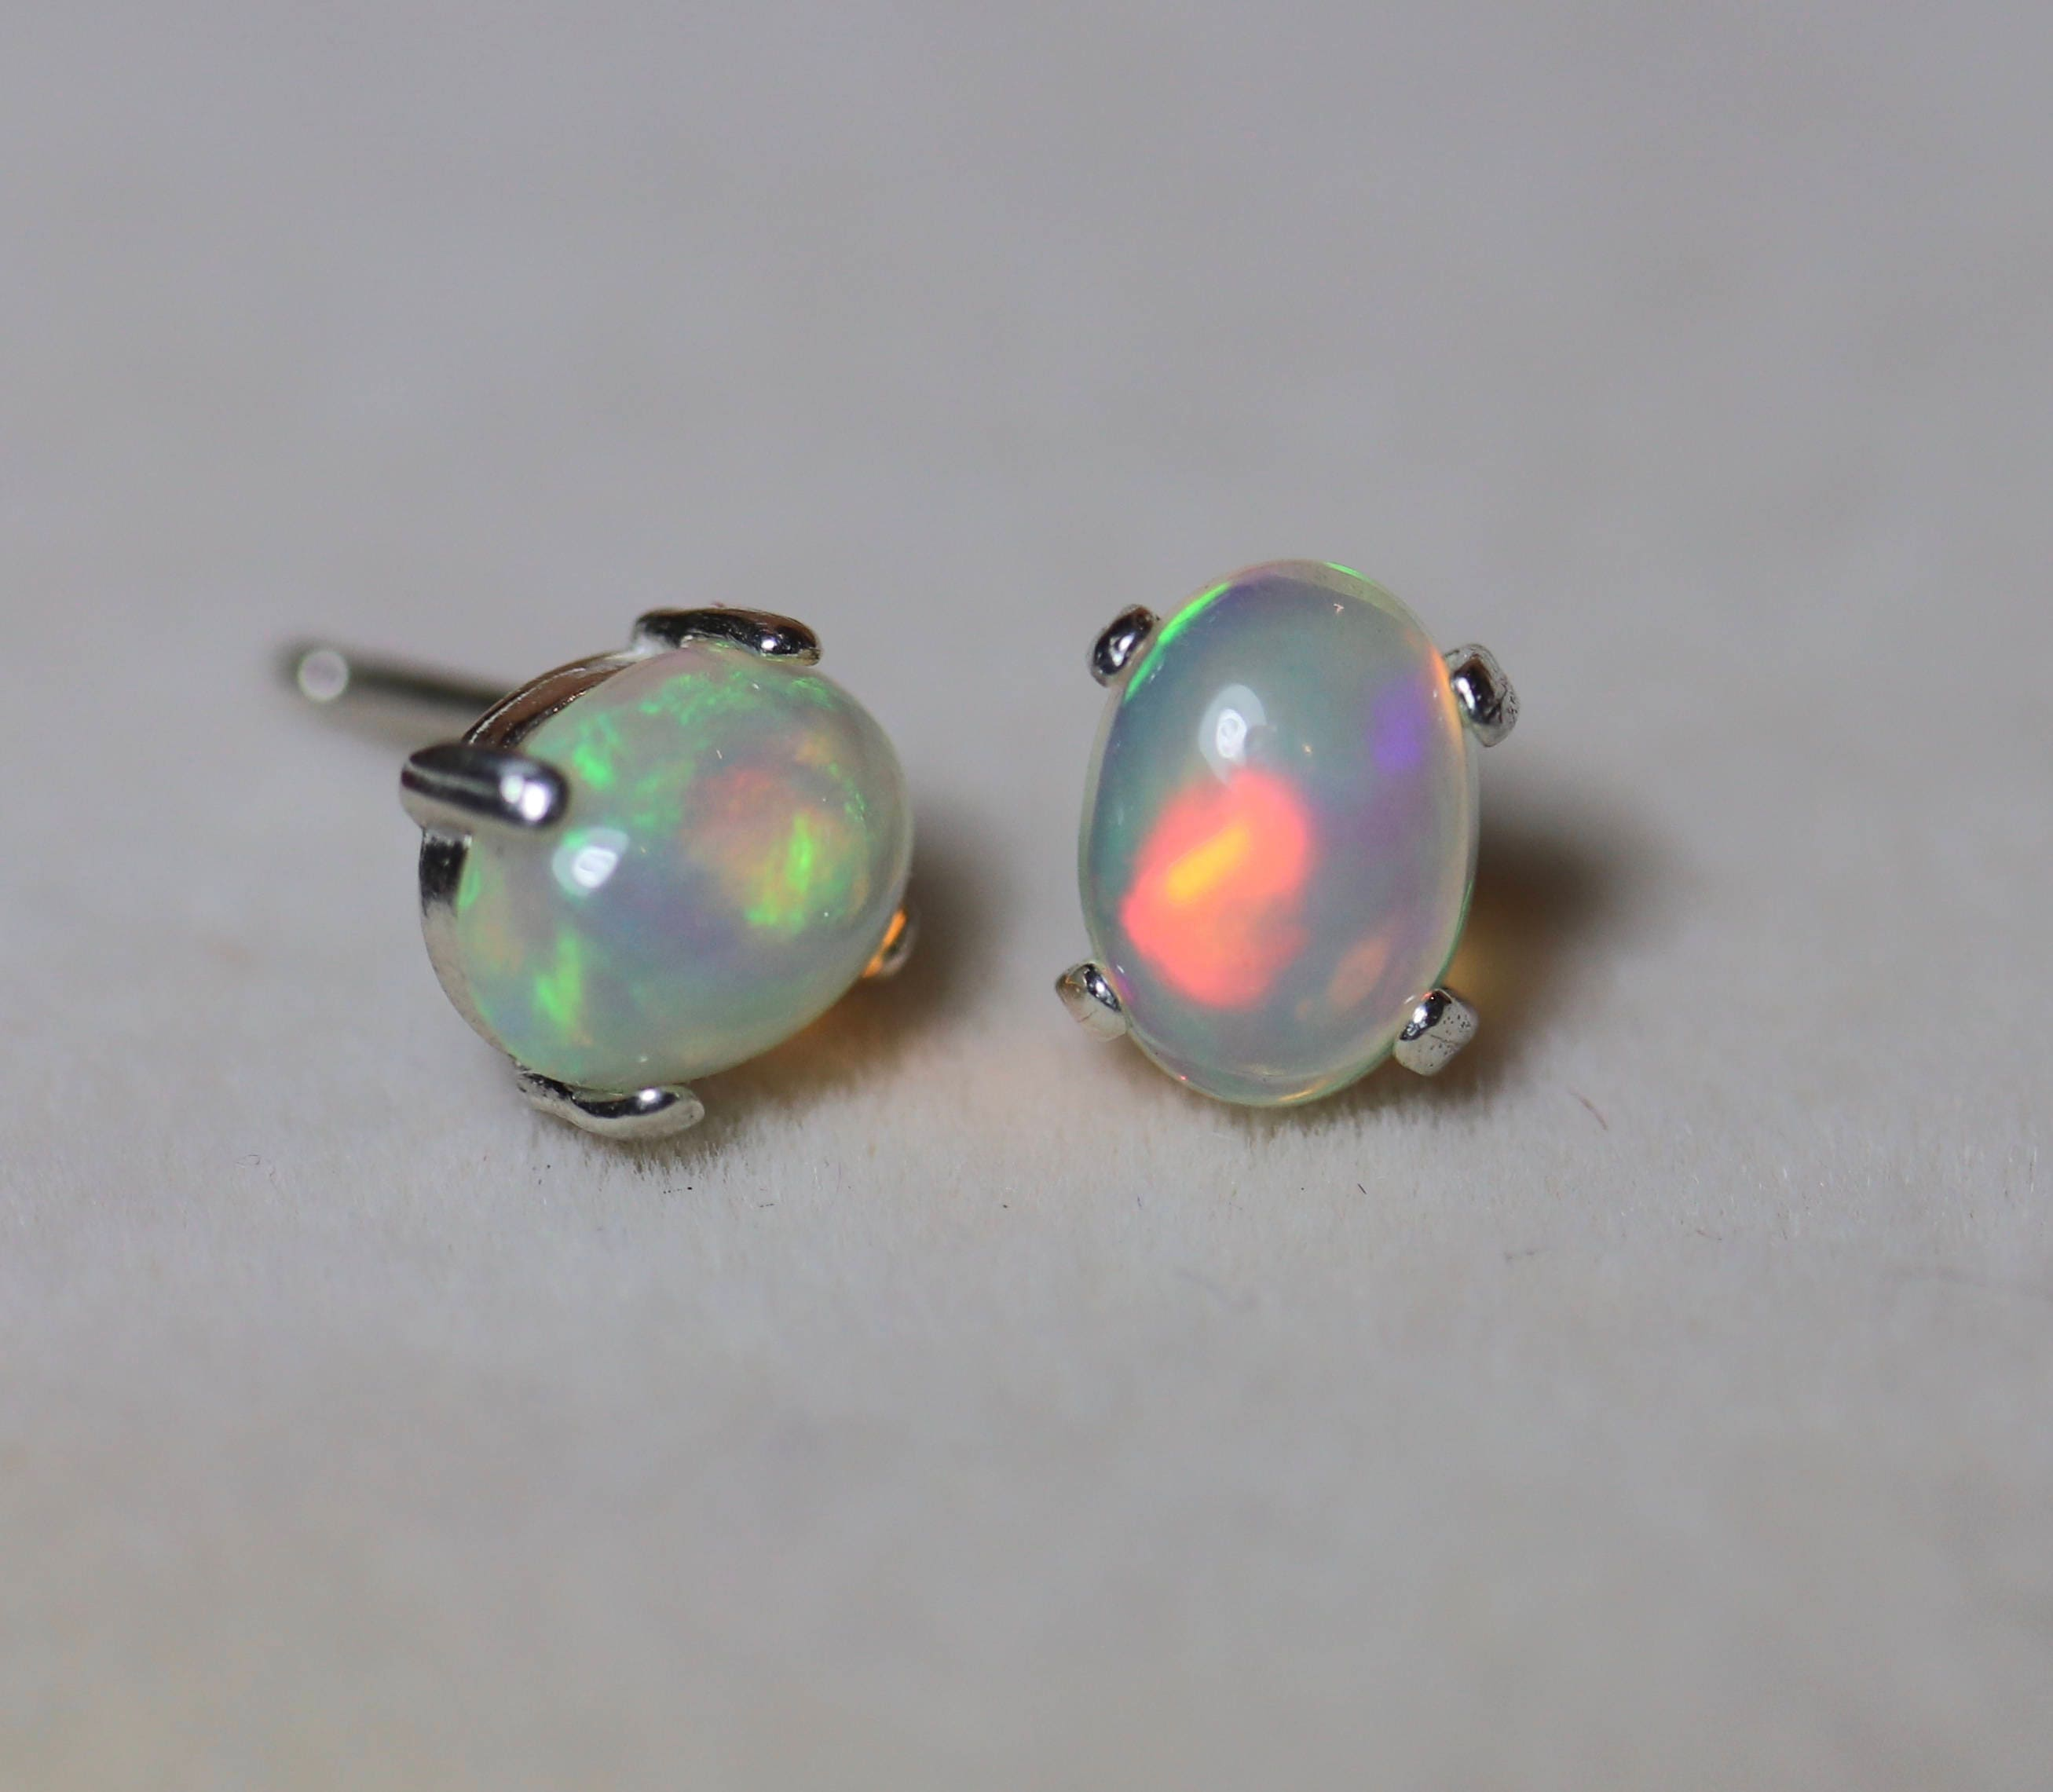 stone stainless earrings hypoallergenic stud steel gift dp handmade opal genuine surgical birthday raw com amazon